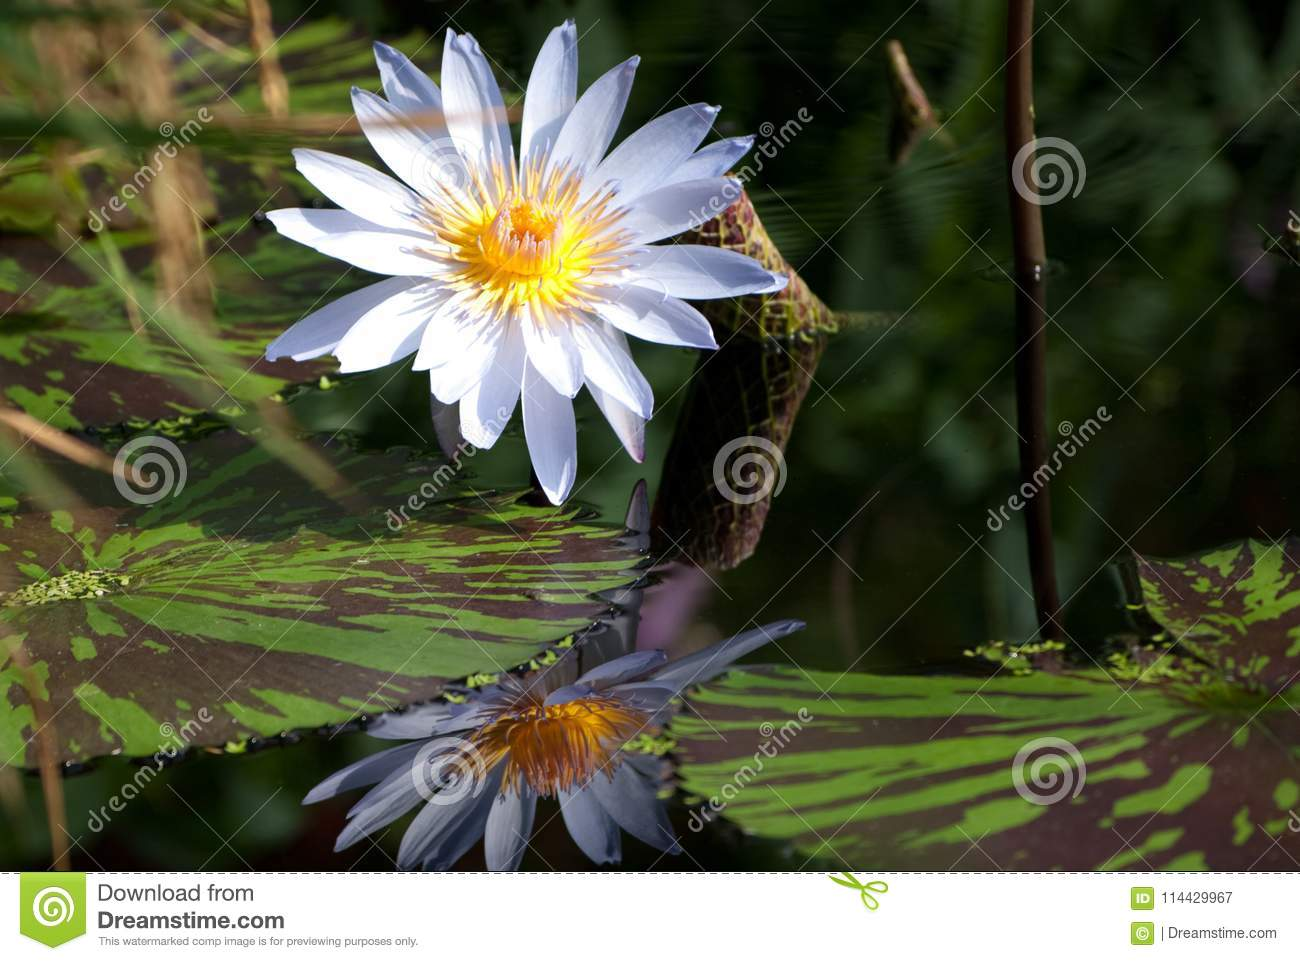 Lily pads stock flower picturesque pond picturesboss download beautiful white water lily and pad stock image of white natural jpg 1300x961 lily pads izmirmasajfo